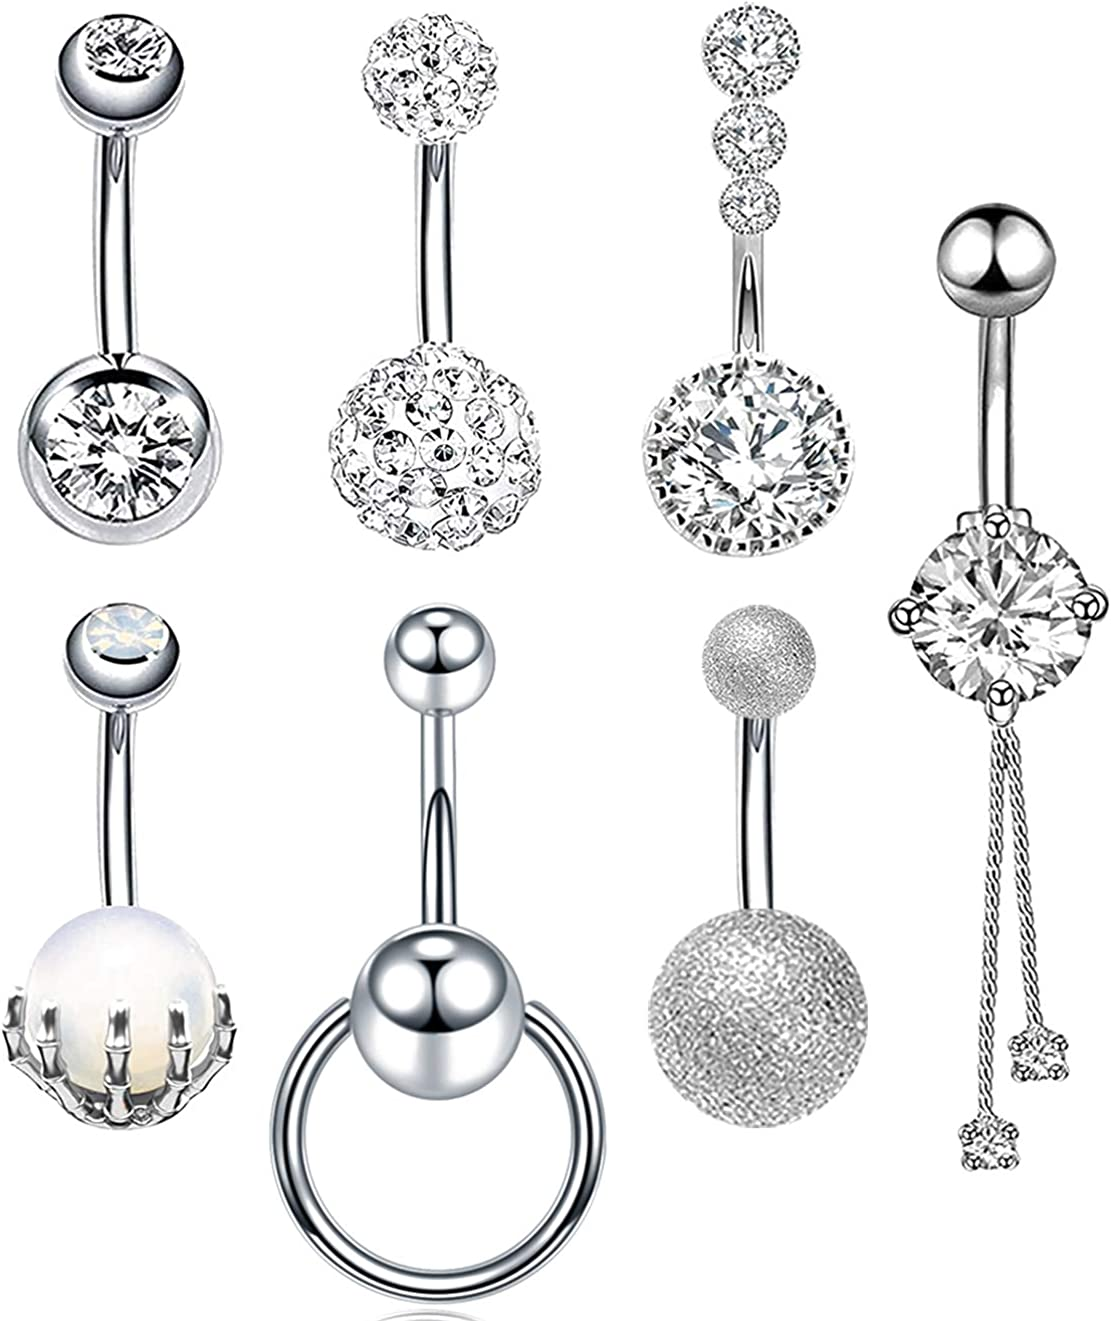 AceFun 16Pcs Belly Button Rings Surgical Steel Belly Rings for Women Girls Navel Bars Body Piercing Jewelry 14 Gauge